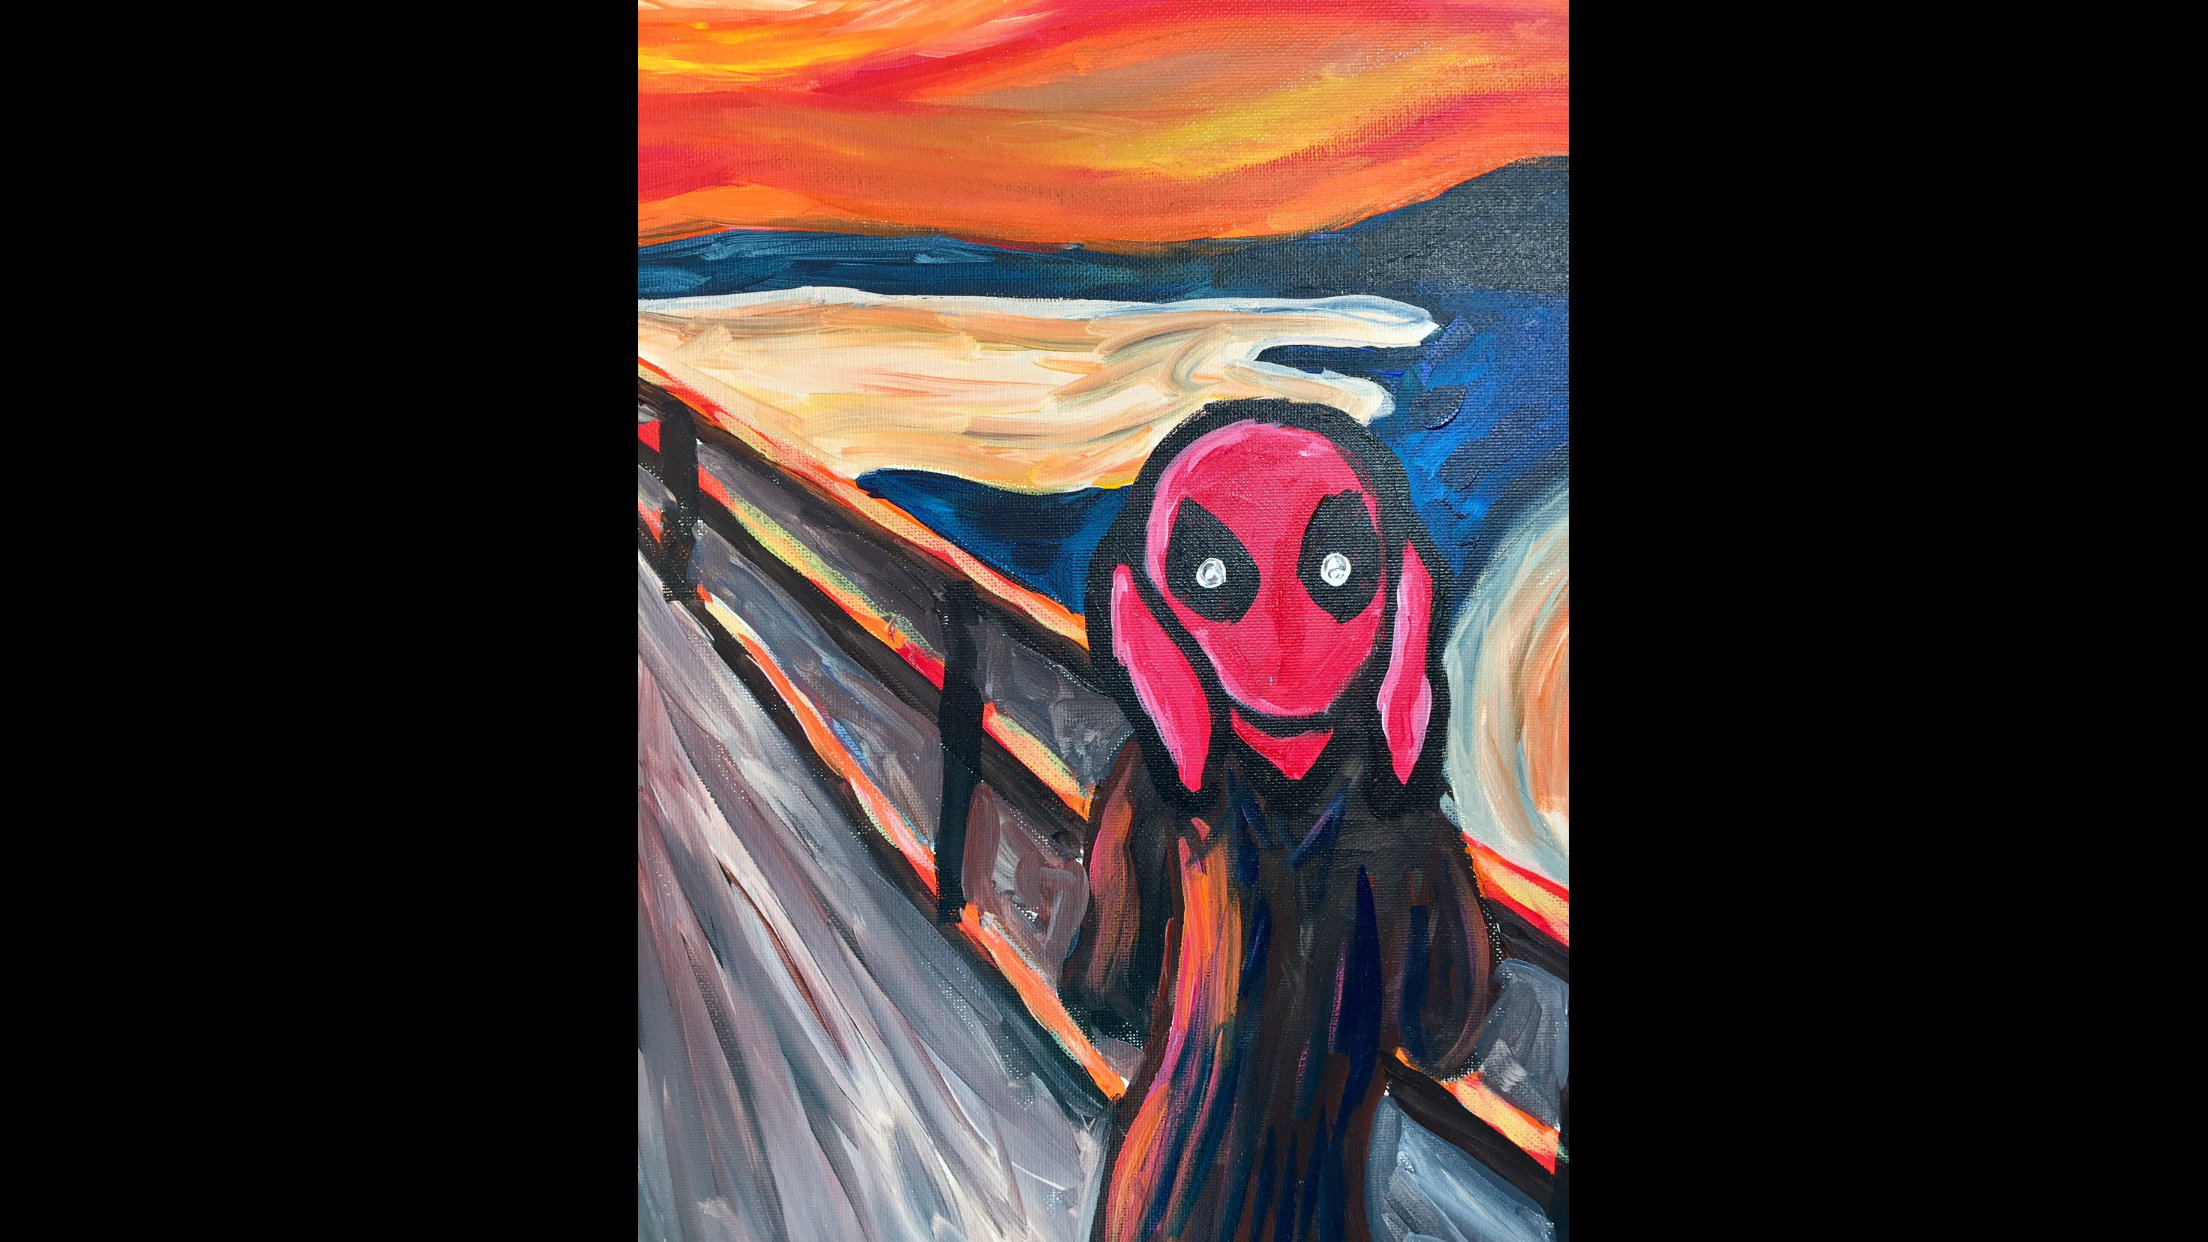 Deadpool as The Scream